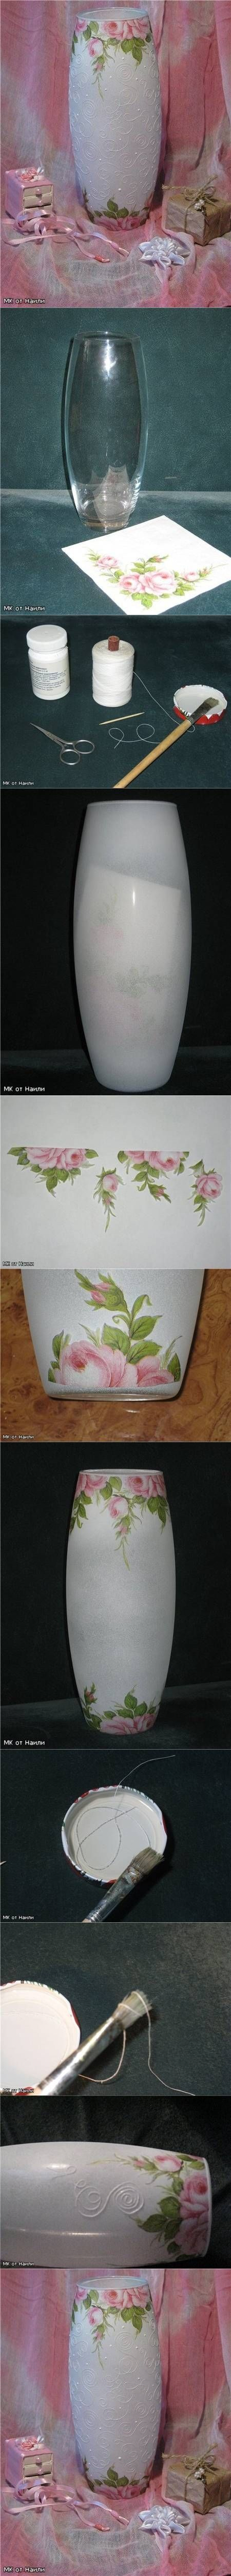 DIY How to Paint a Glass Jar via usefuldiy.com